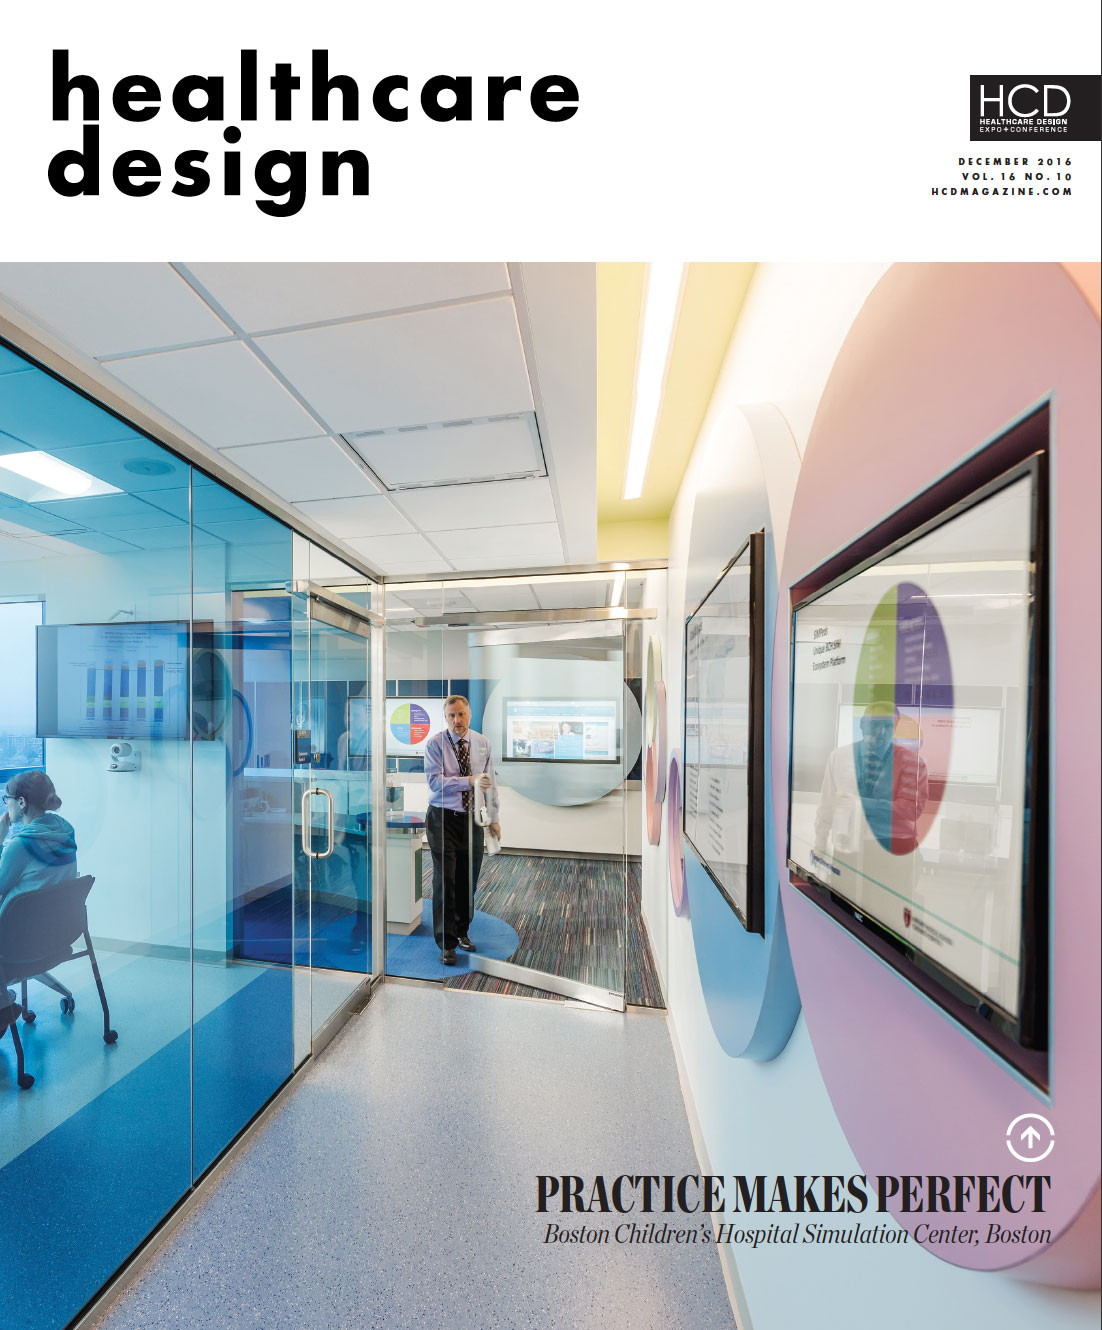 Practice Makes Perfect, Healthcare Design